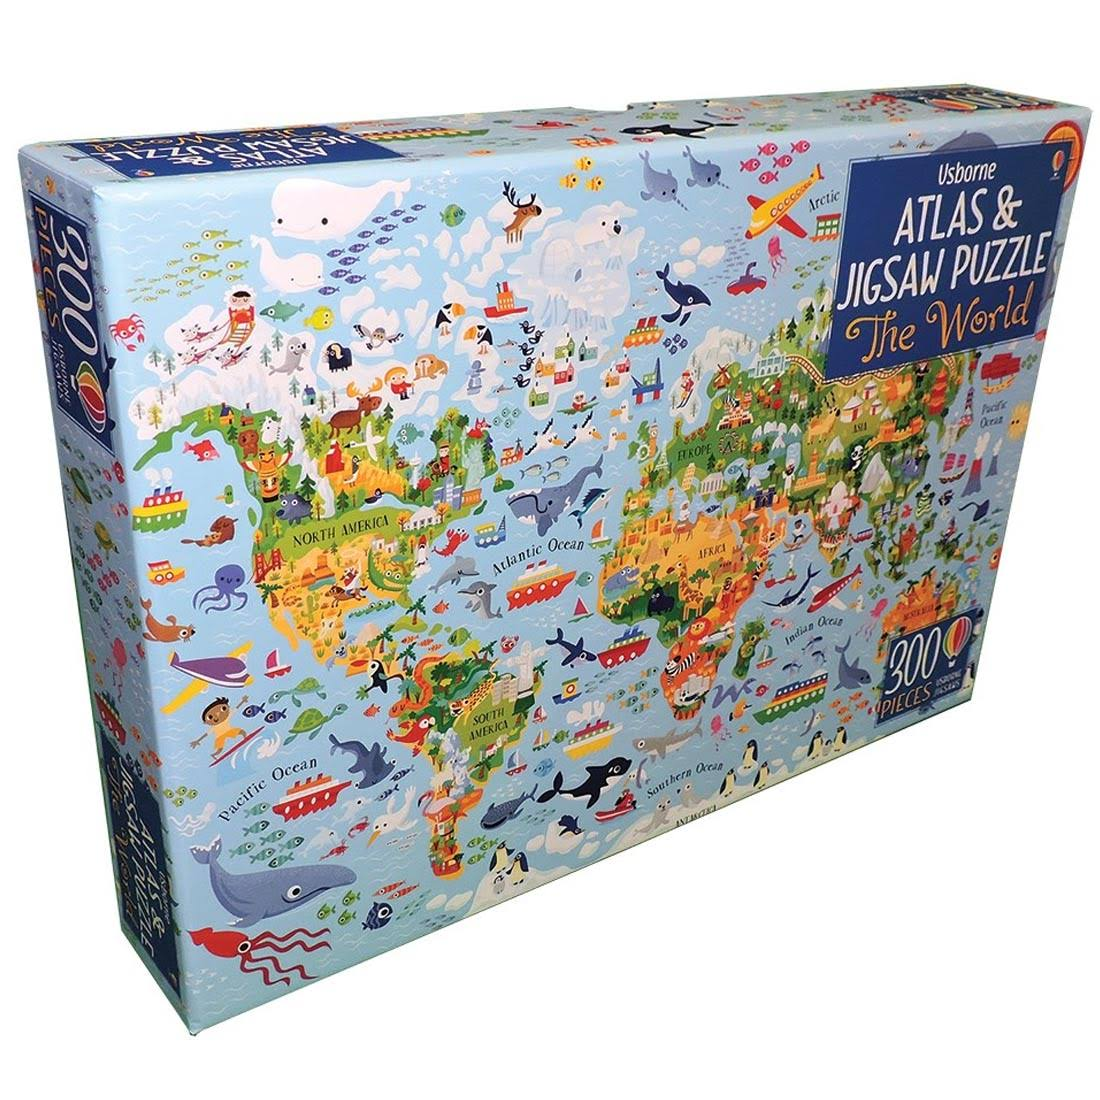 Atlas and Jigsaw Puzzle - the World Map of the World Jigsaw